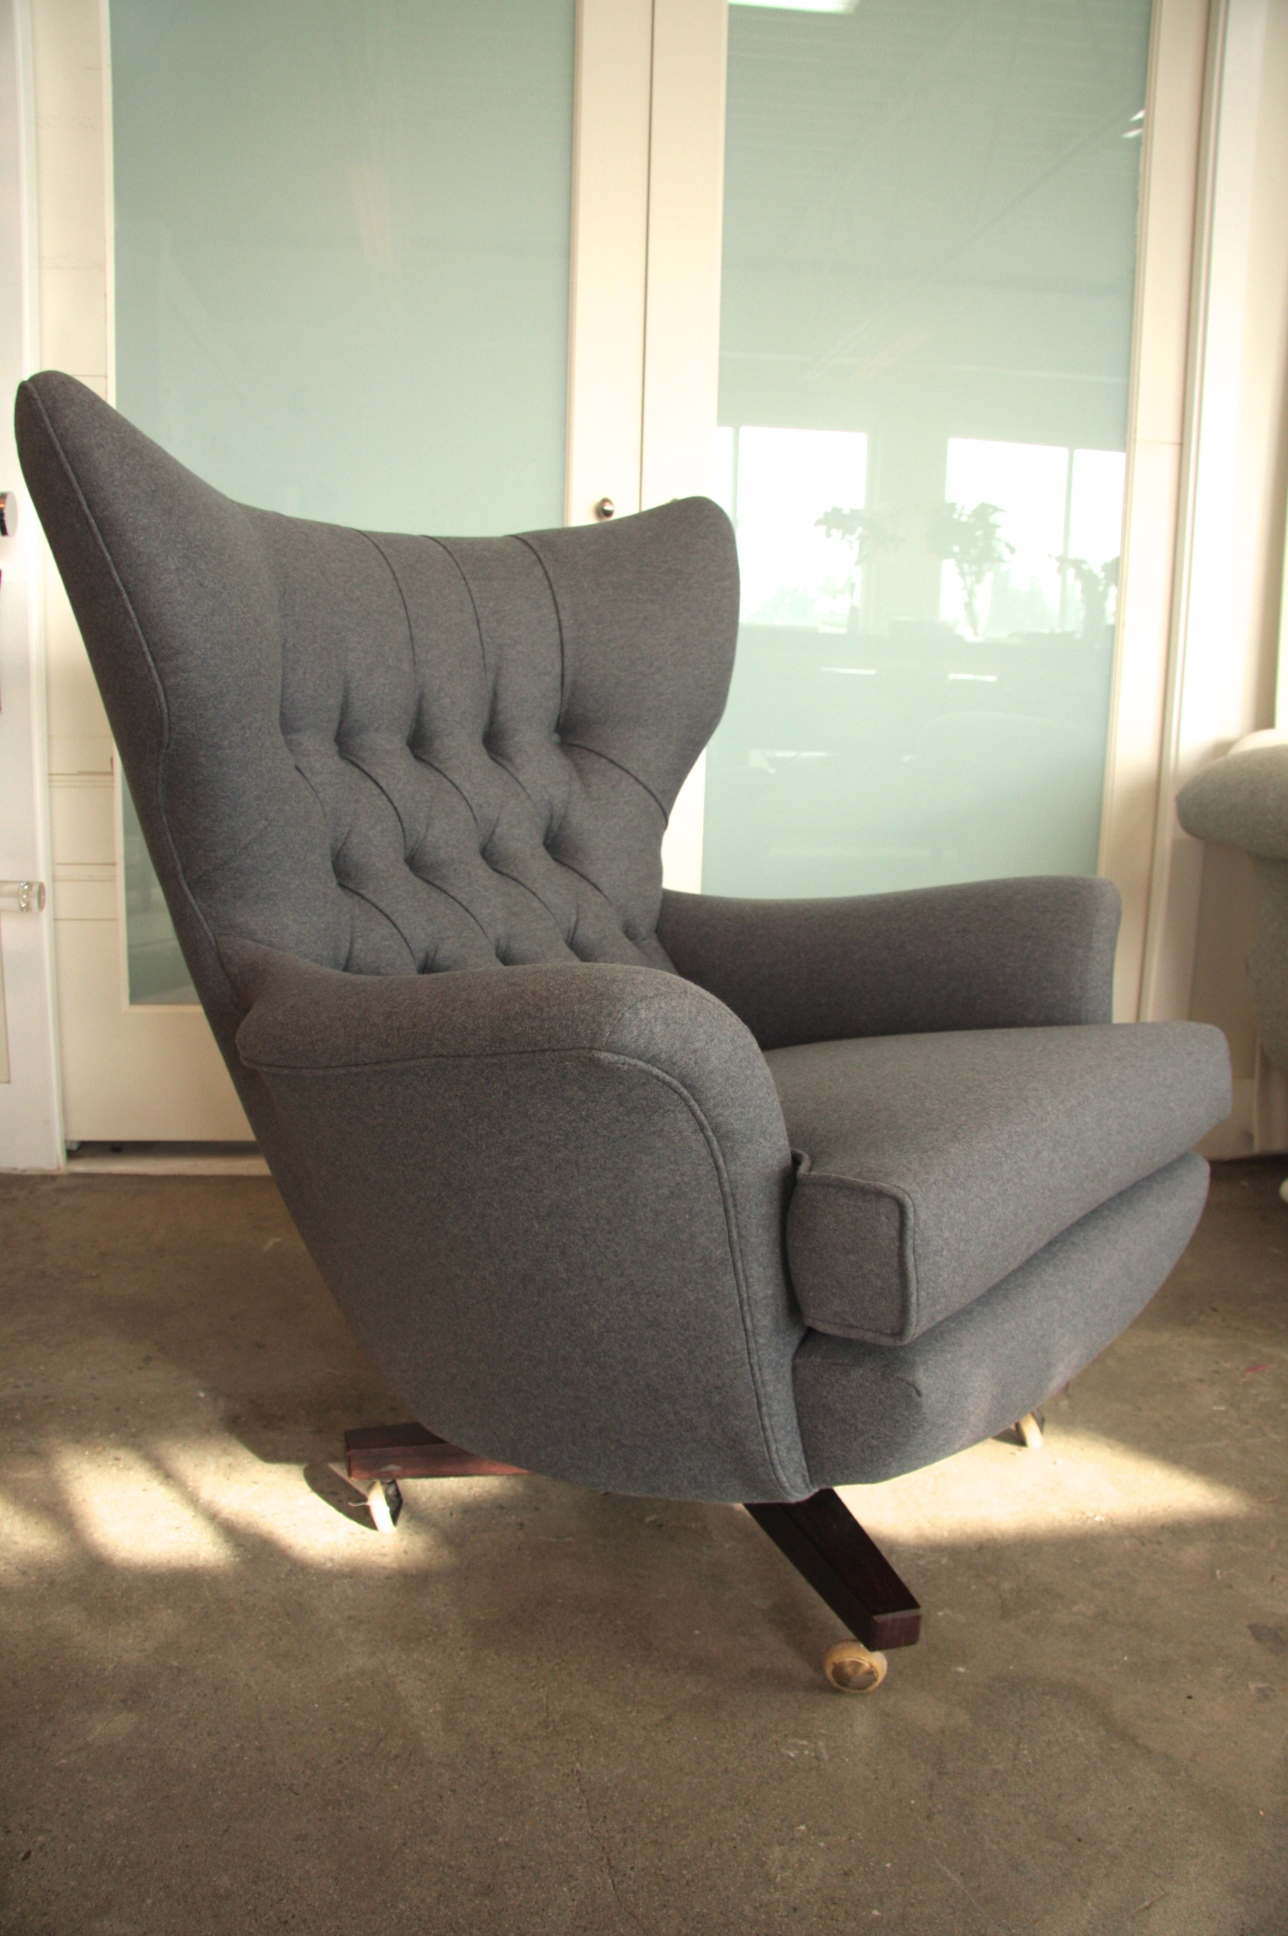 Mid Century Modern swivel chair, with diamond tufting detail and piping trim.